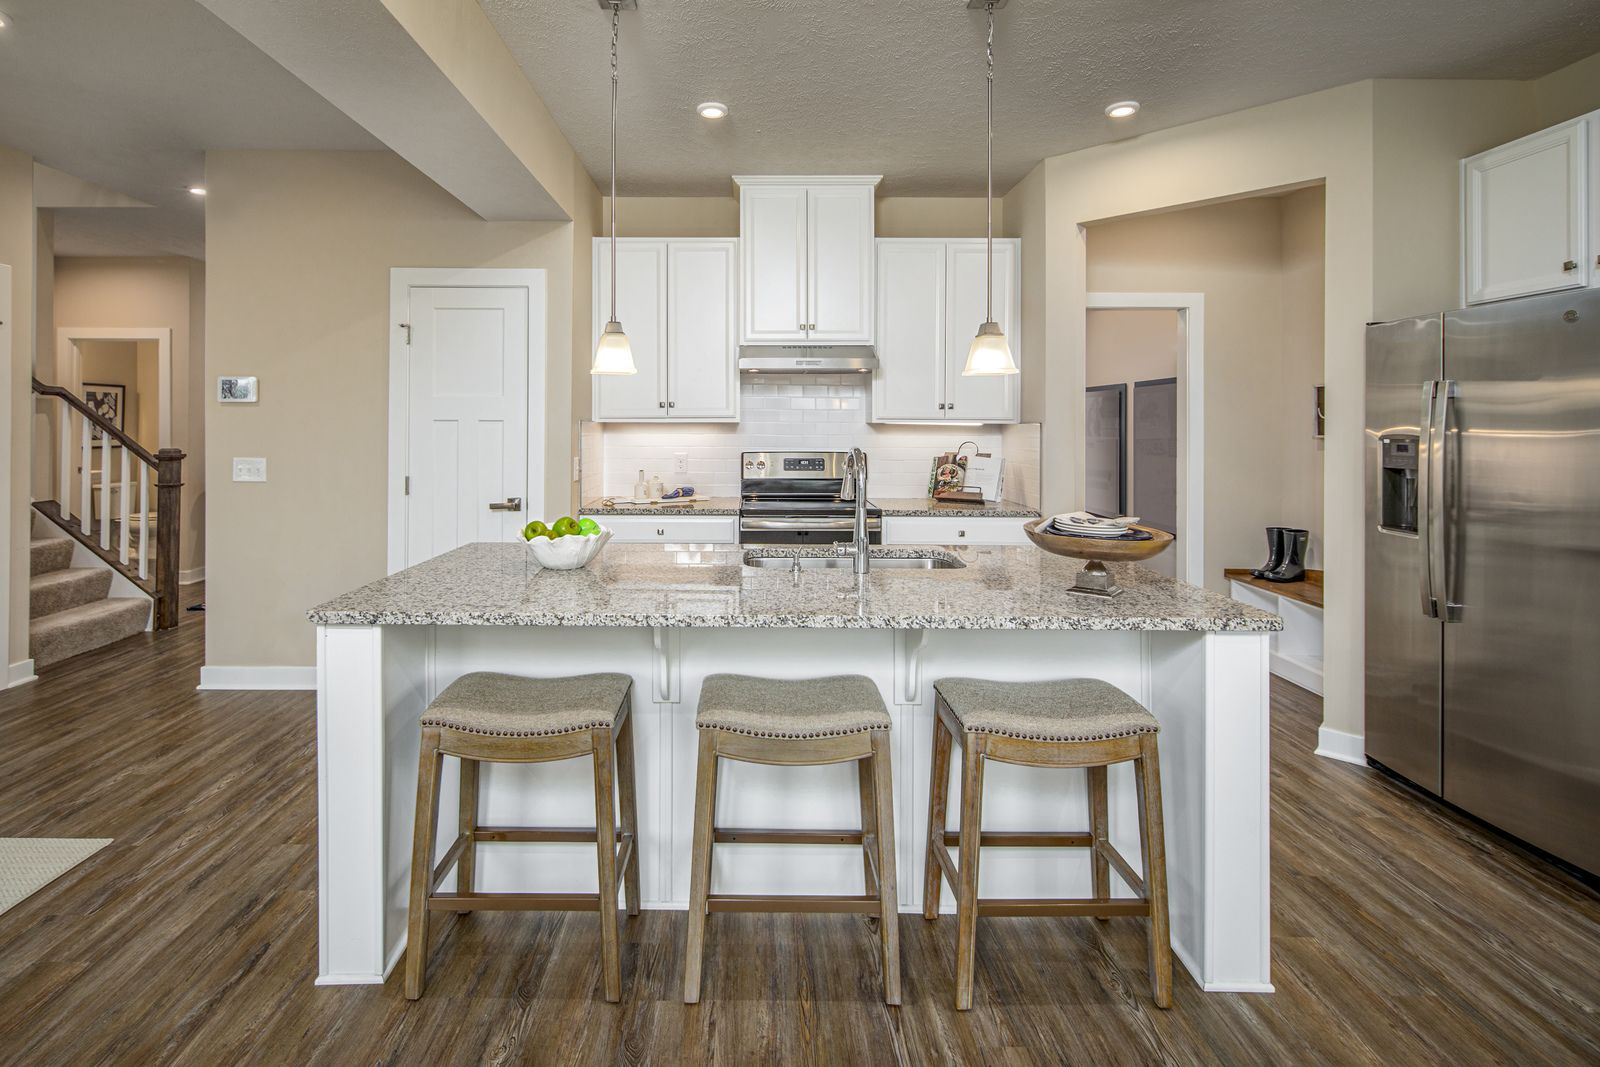 Kitchen featured in the Allegheny By Ryan Homes in Charlotte, NC